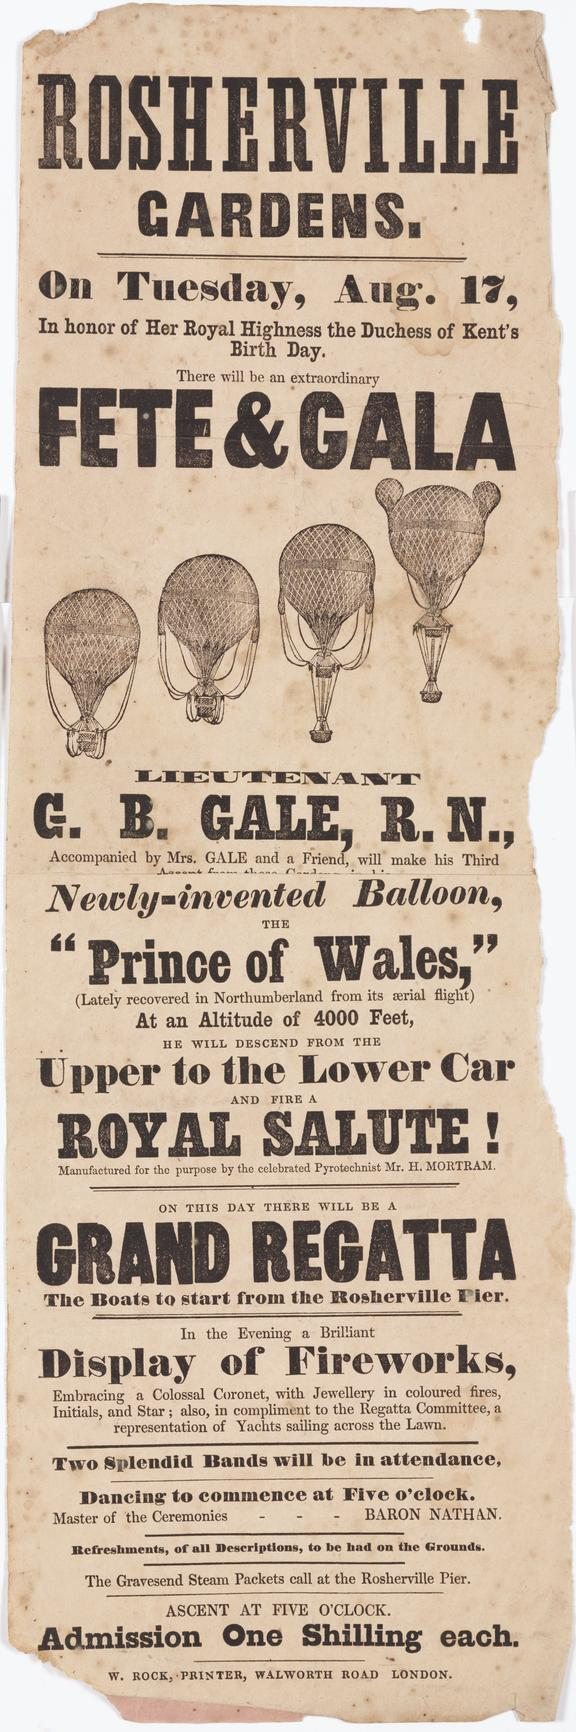 Handbill for a balloon ascent by Lieutenant GB Gale RN on Tuesday August 17th 1847